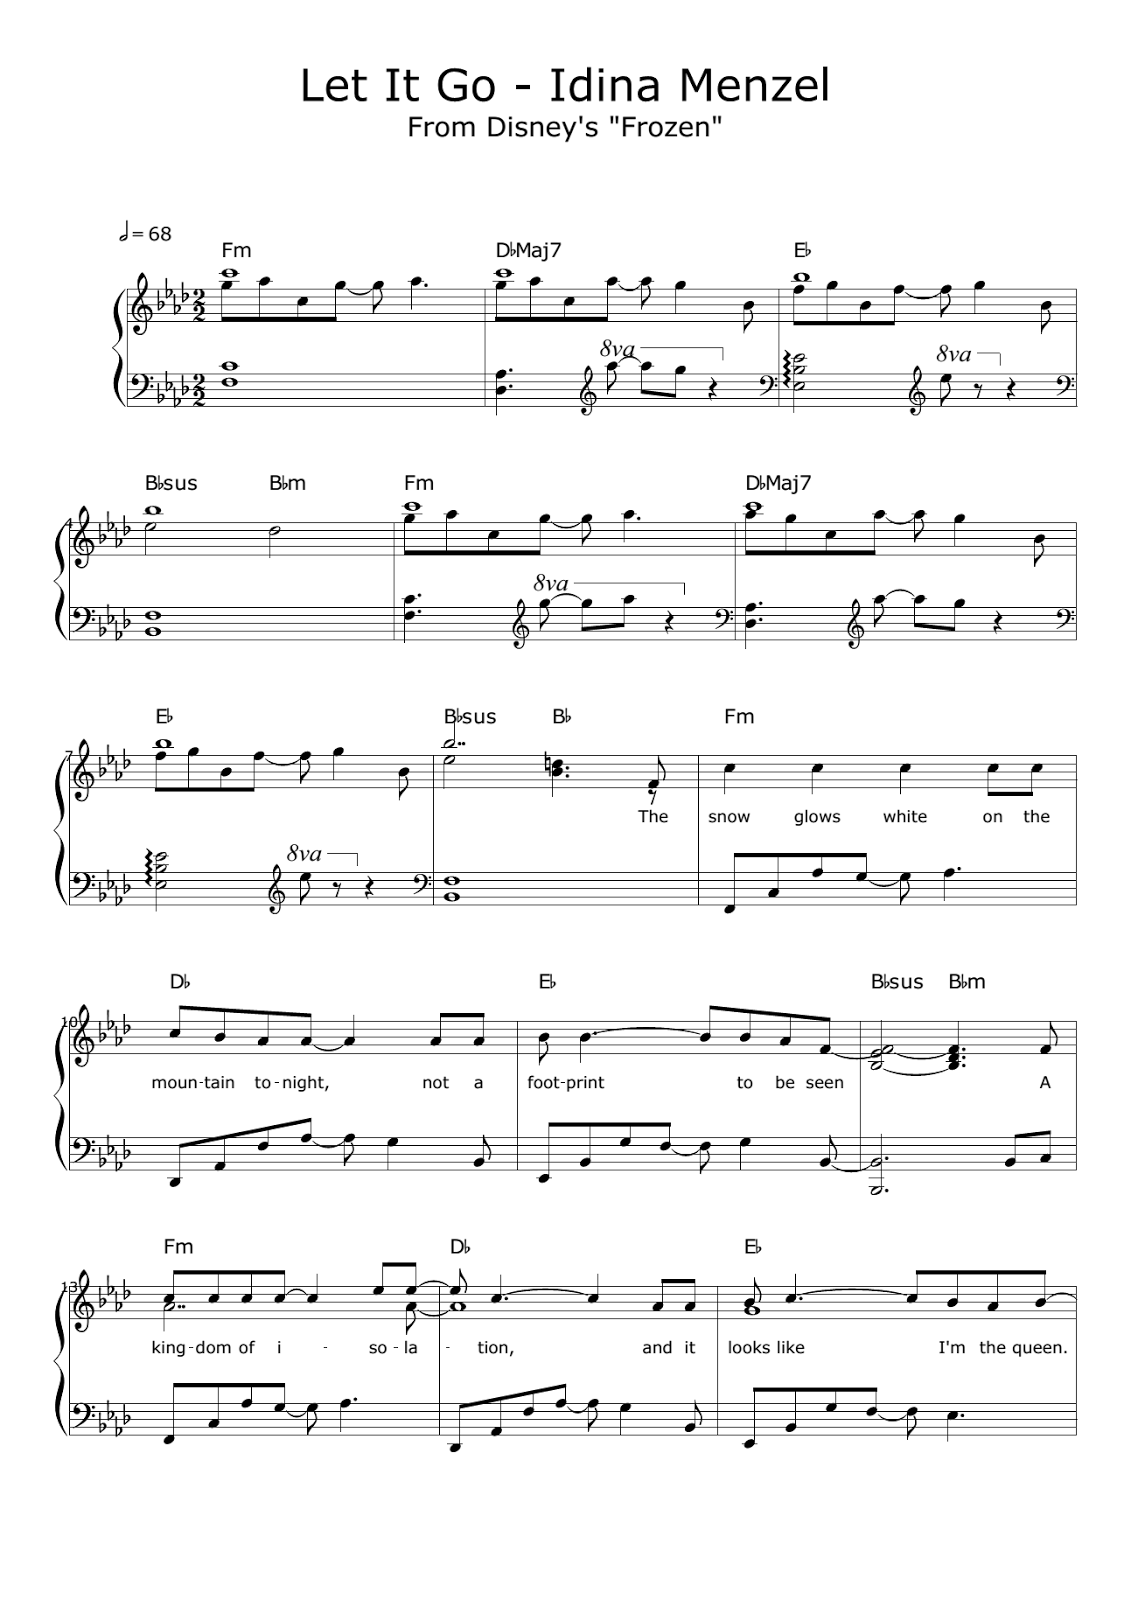 Do You Want to Build a Snowman Sheet Music Frozen PDF Free Download